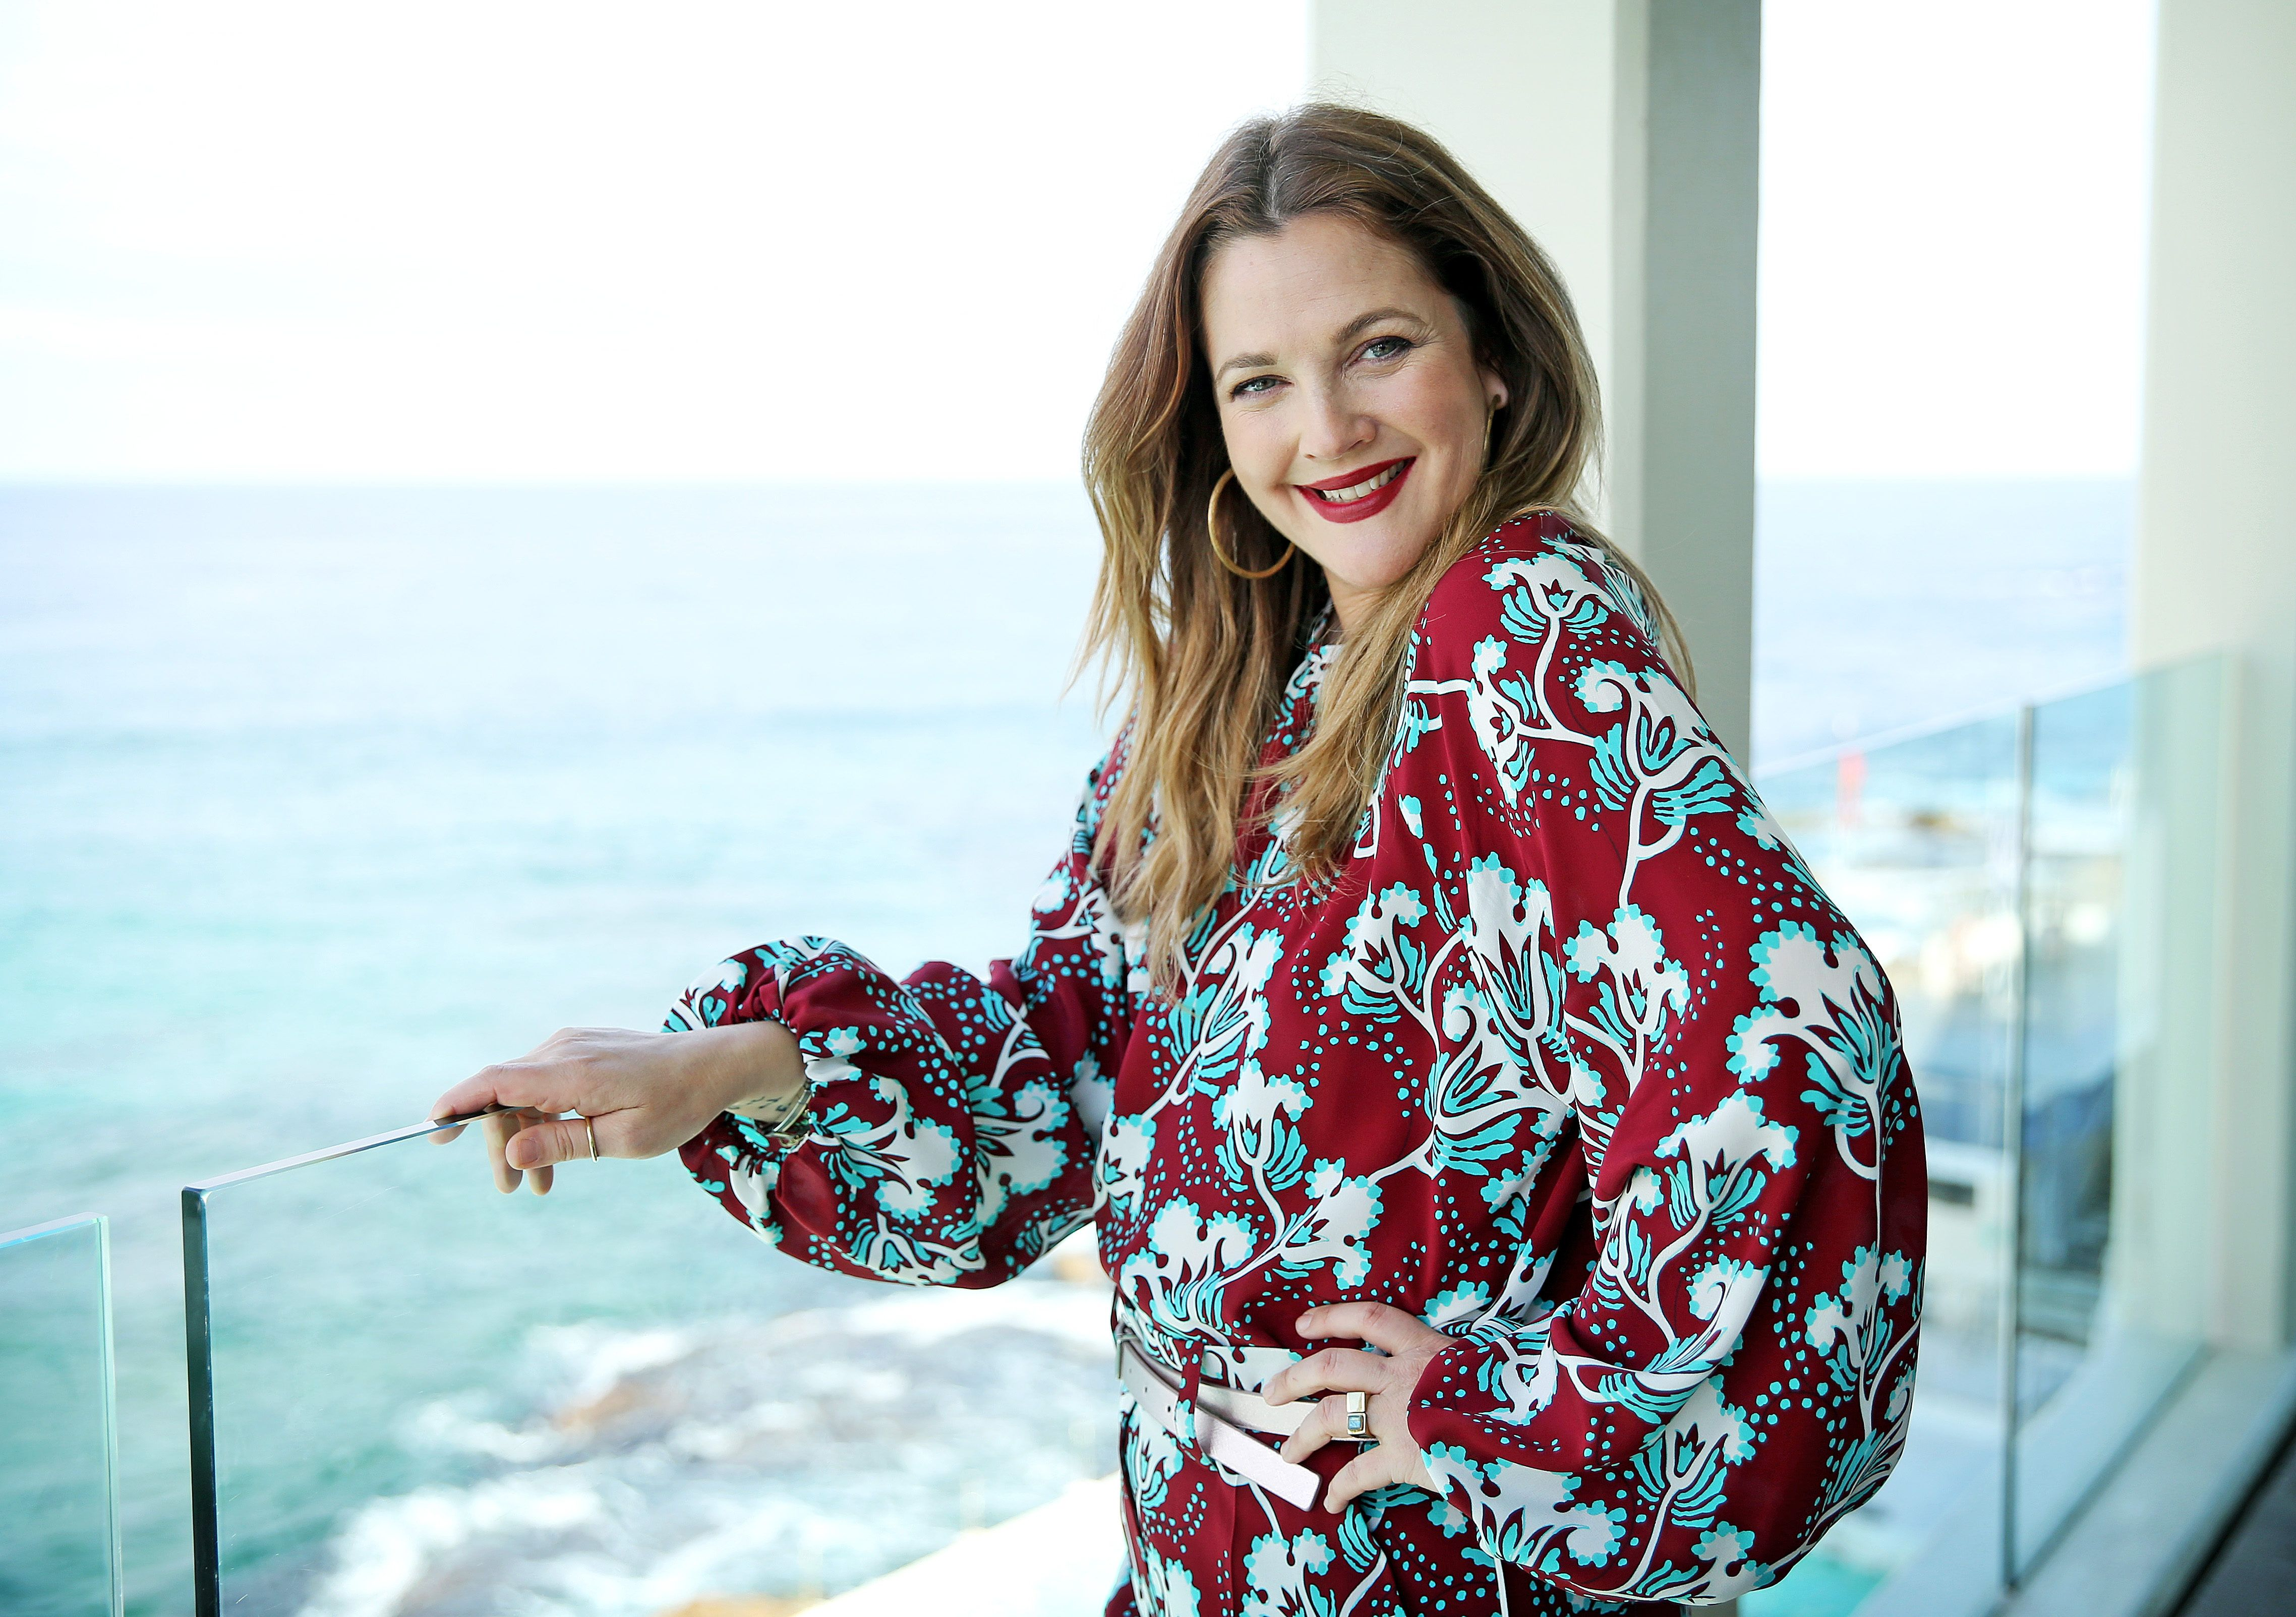 Drew Barrymore's Trainer Just Dished On How The Star's Staying Fit At 45